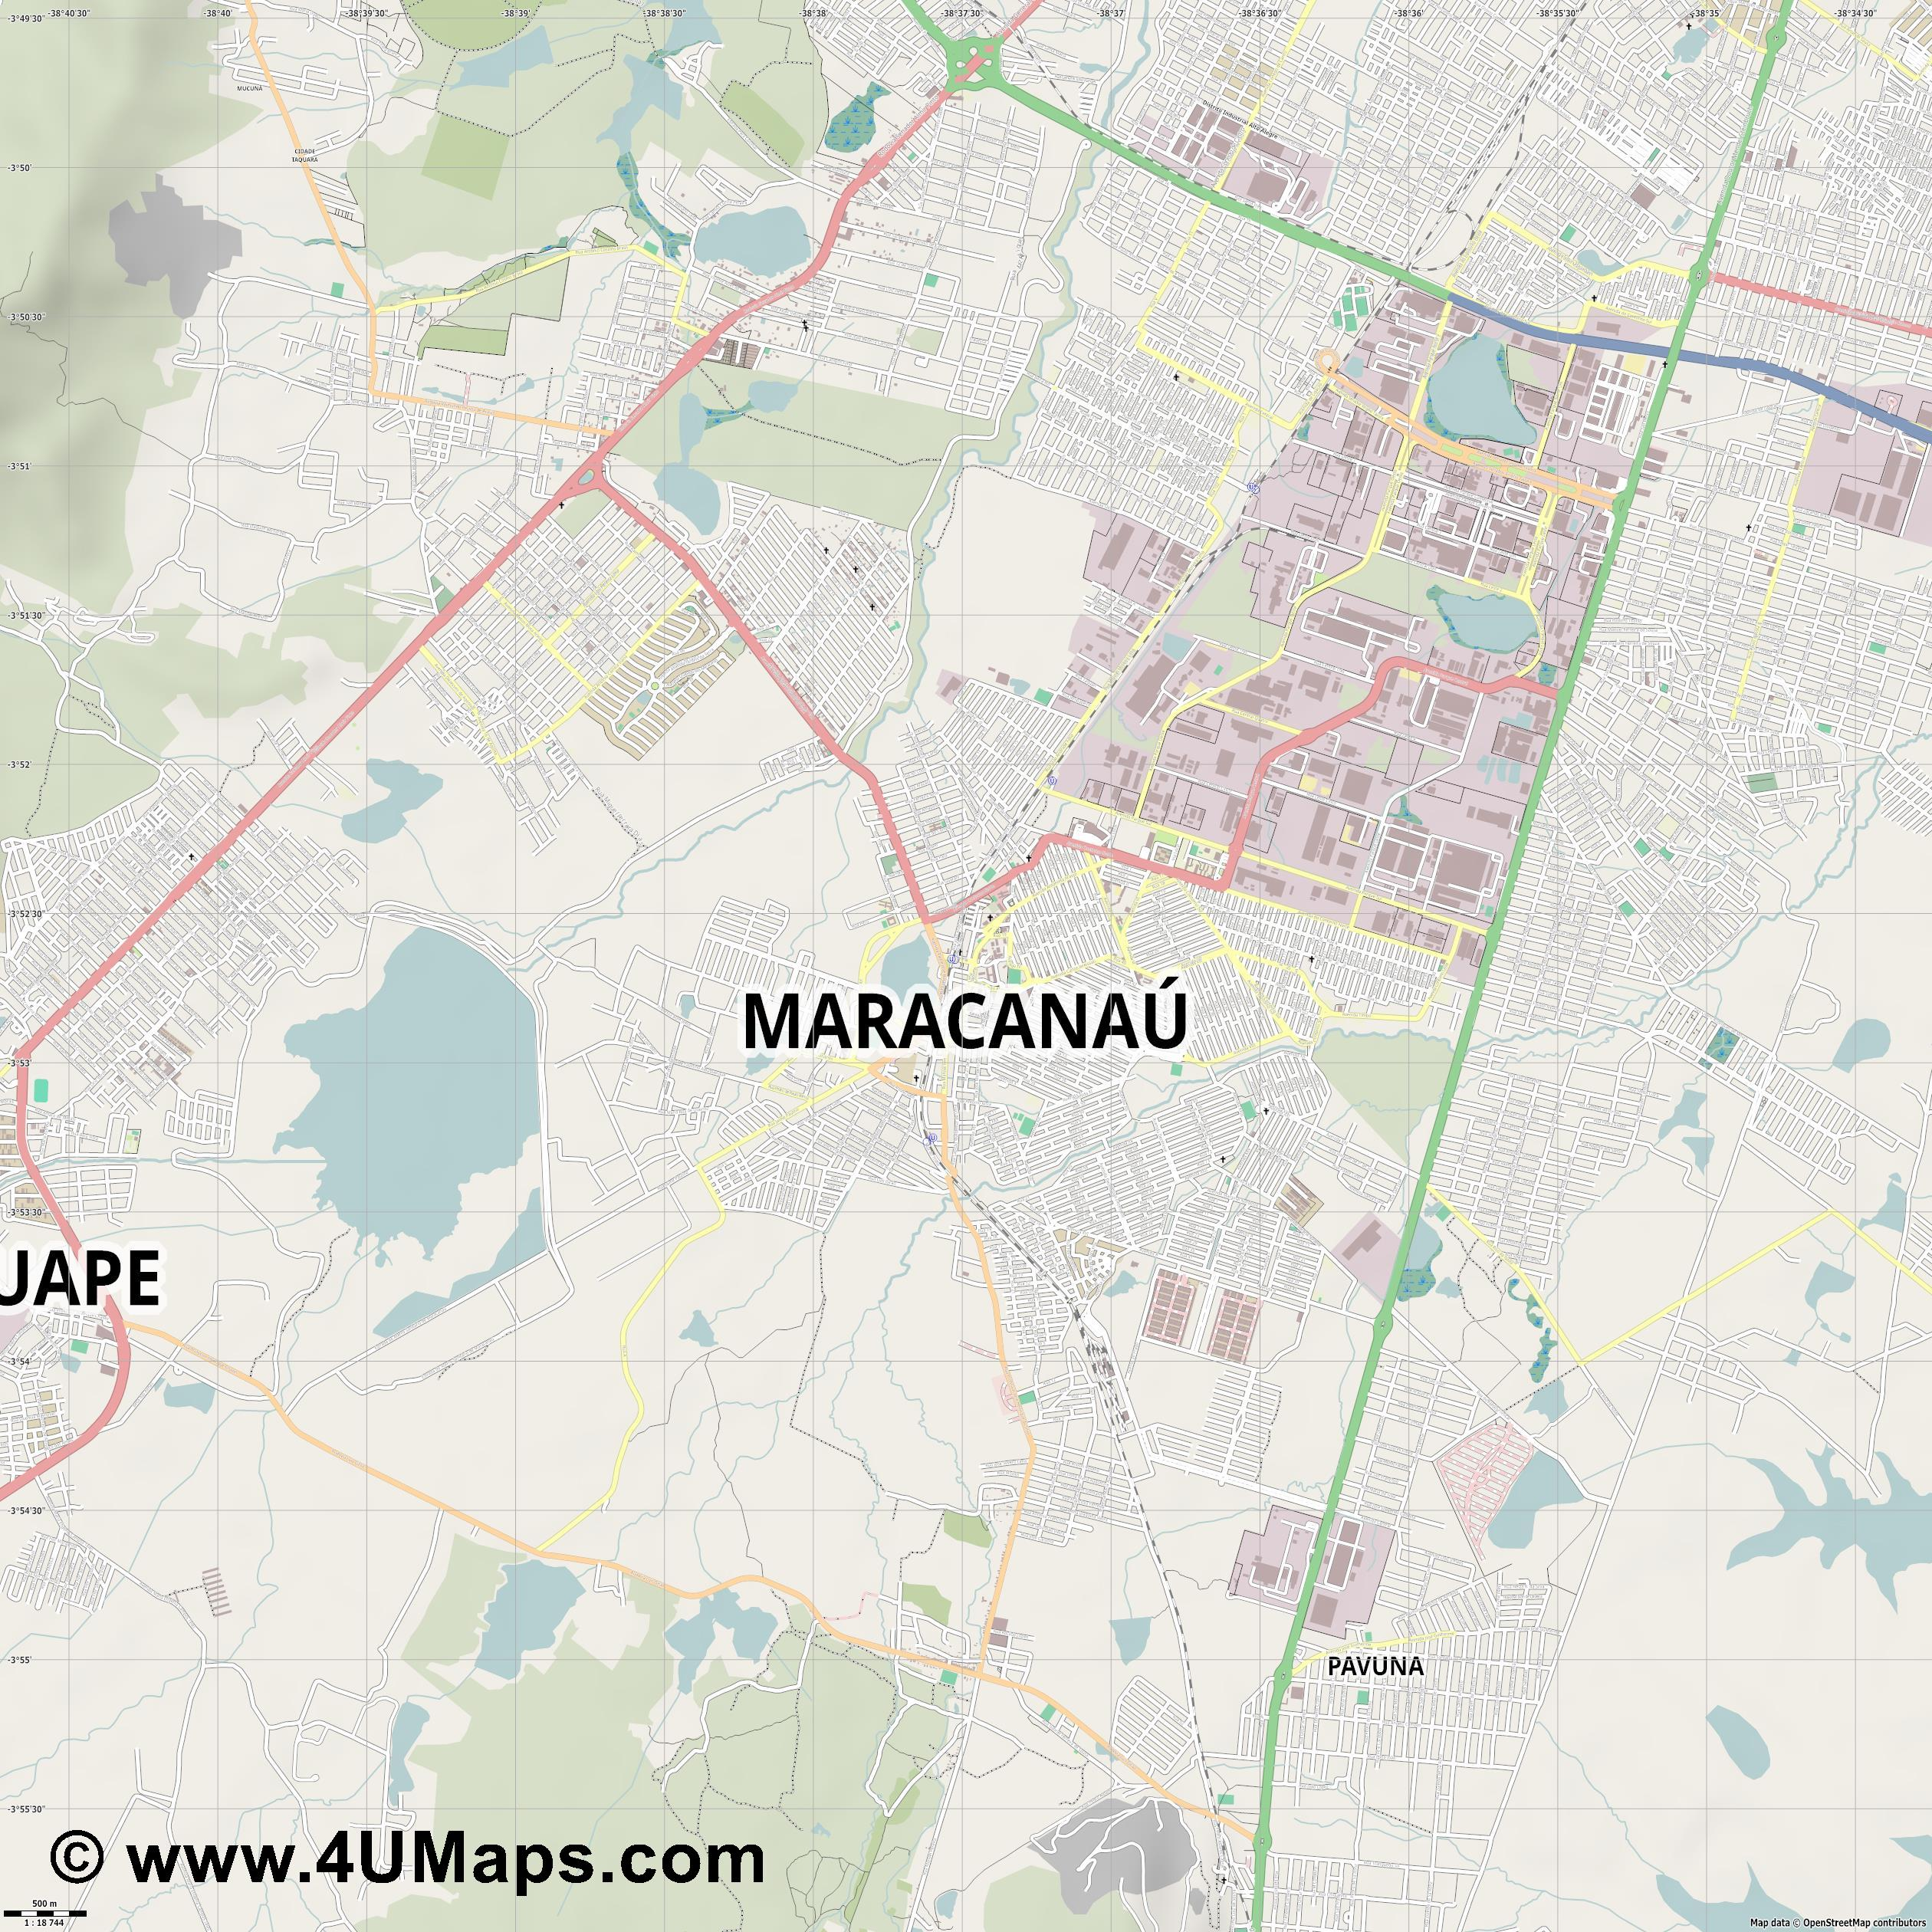 Maracanaú  jpg ultra high detail preview vector city map